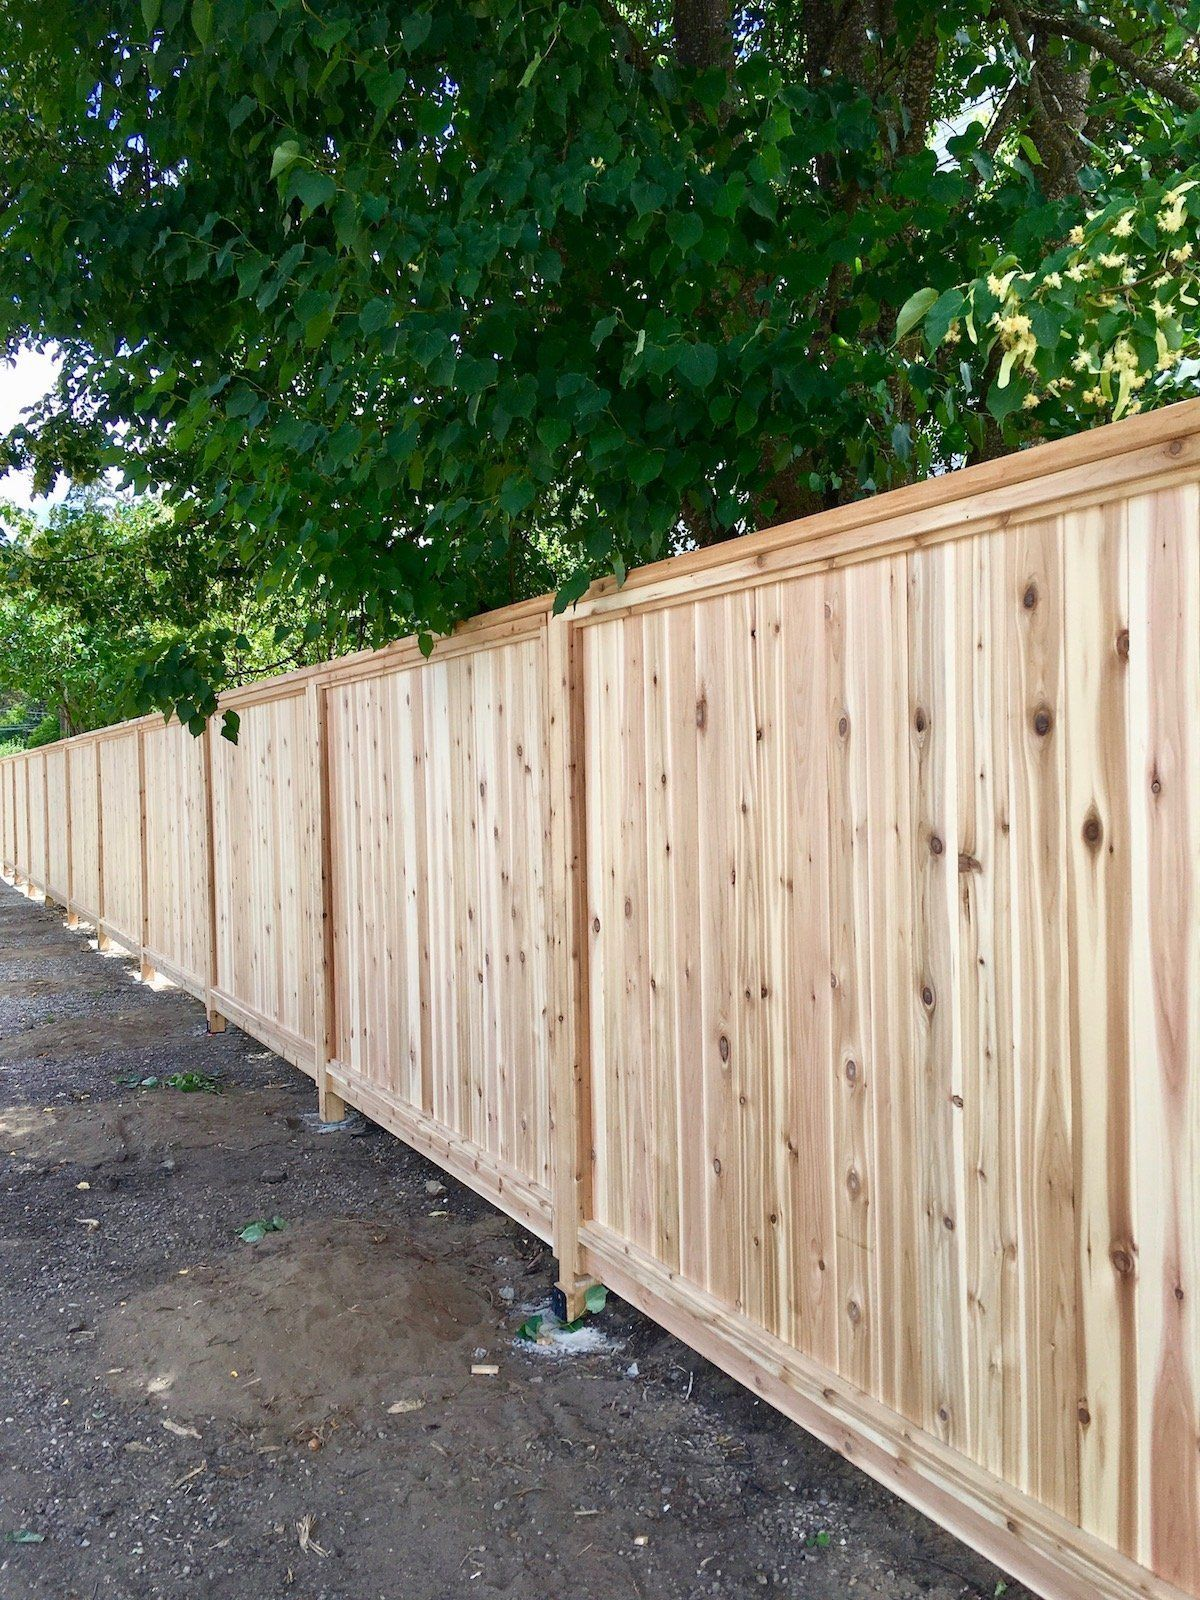 Privacy Fence Using Wood Fence Panels To Create Privacy Fencing Wood Privacy Fence Privacy Landscaping Wood Fence